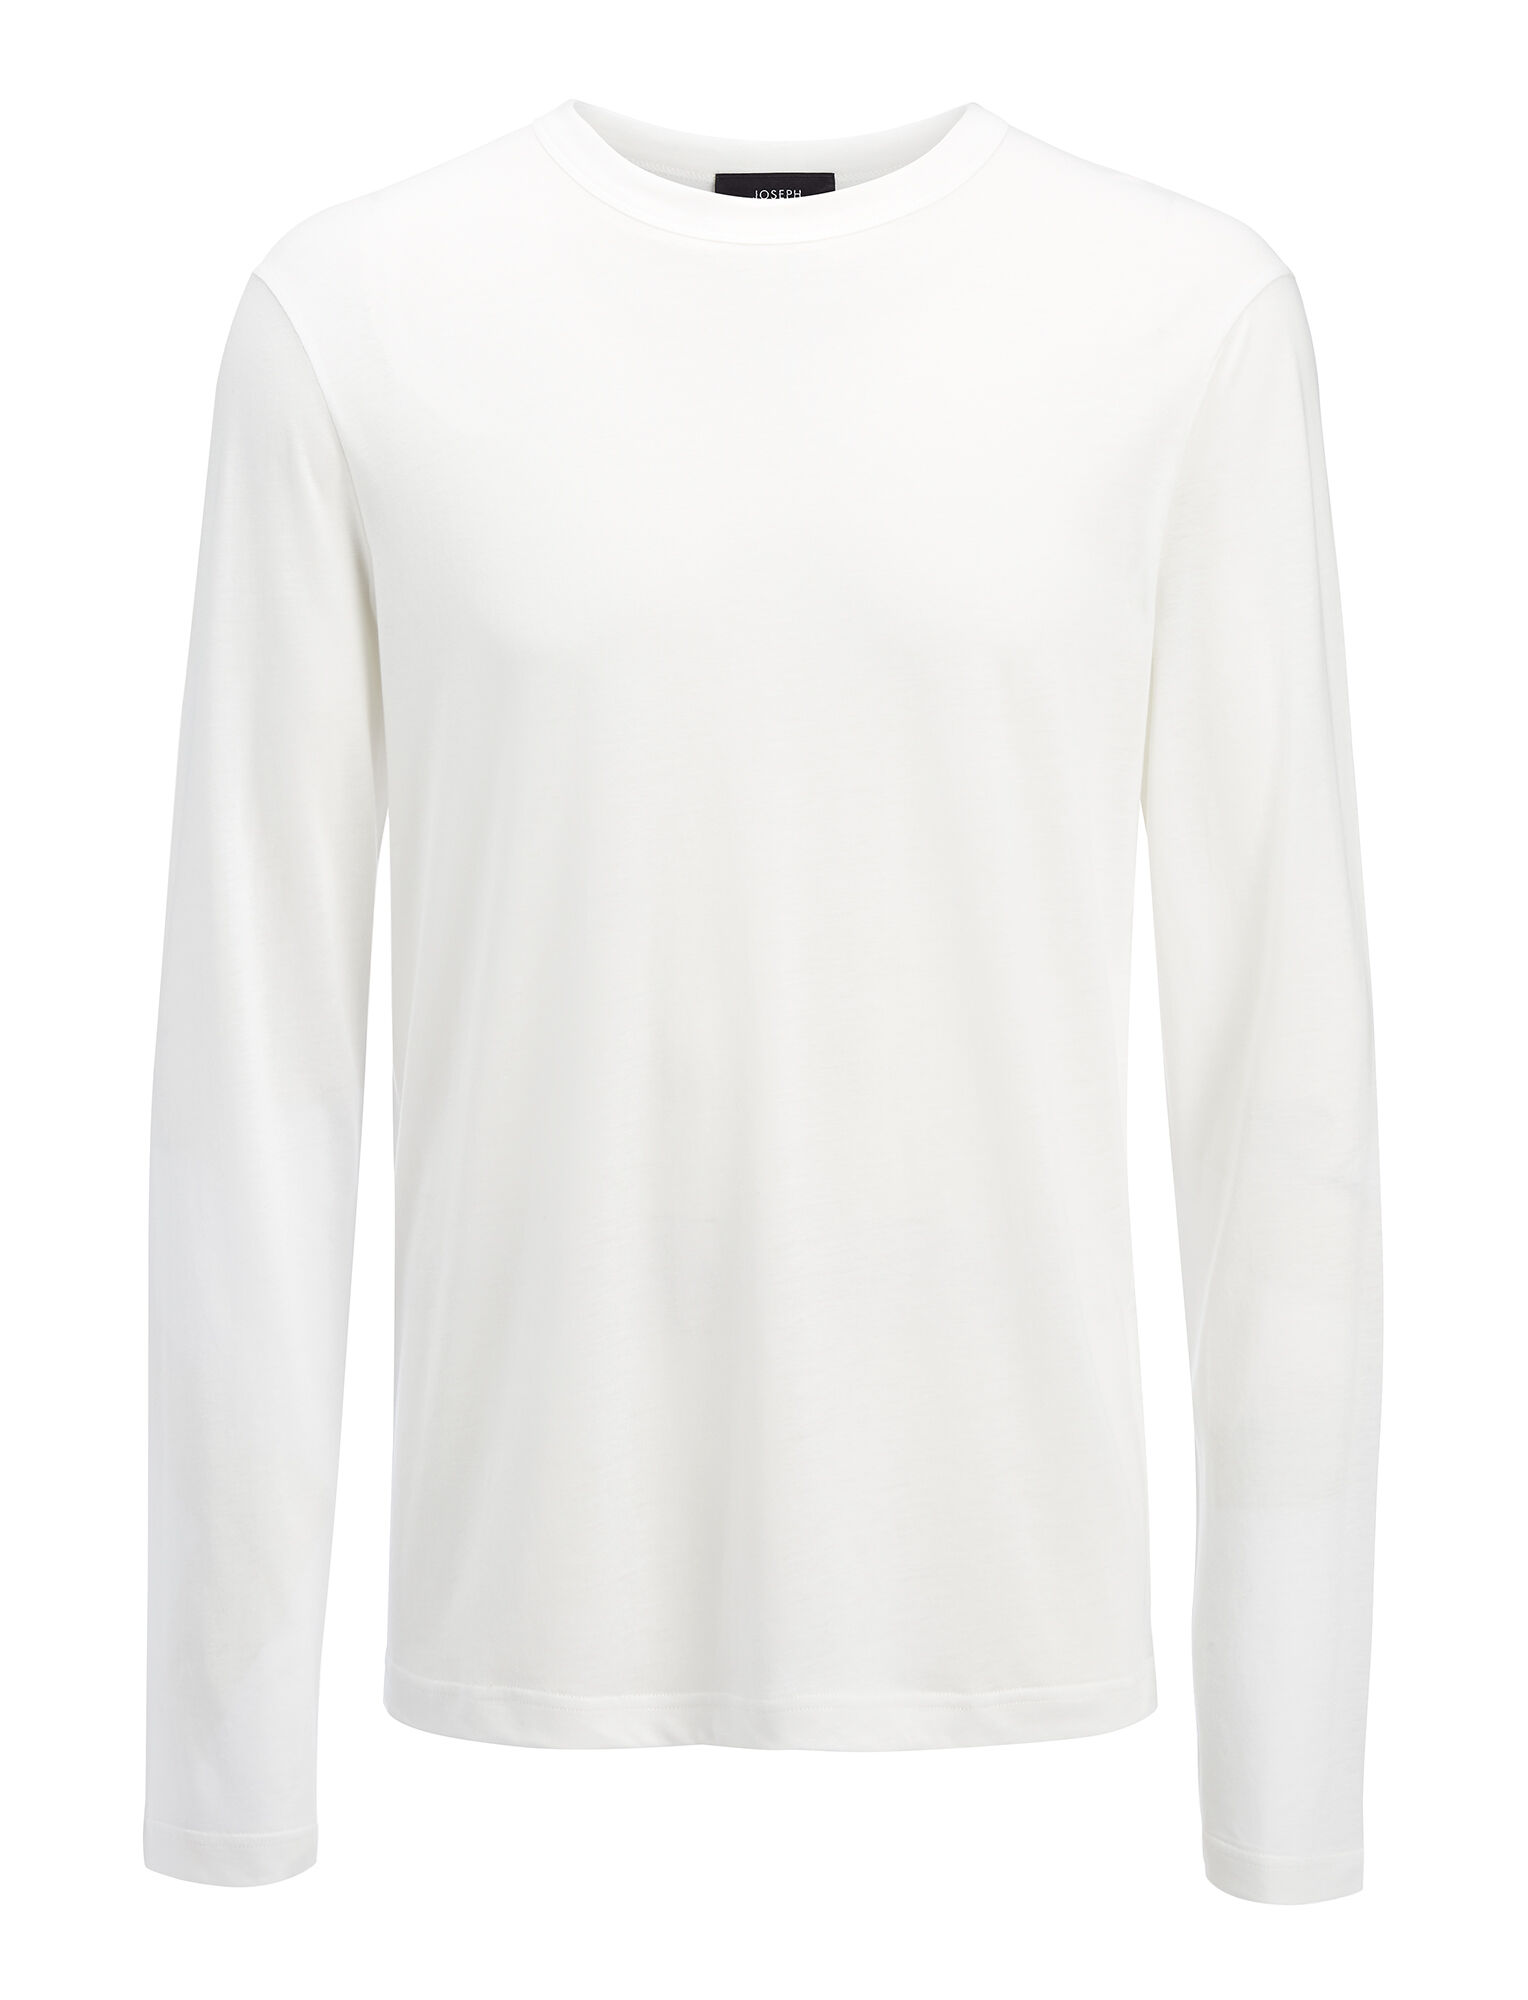 Joseph, Lyocell Jersey Top, in WHITE